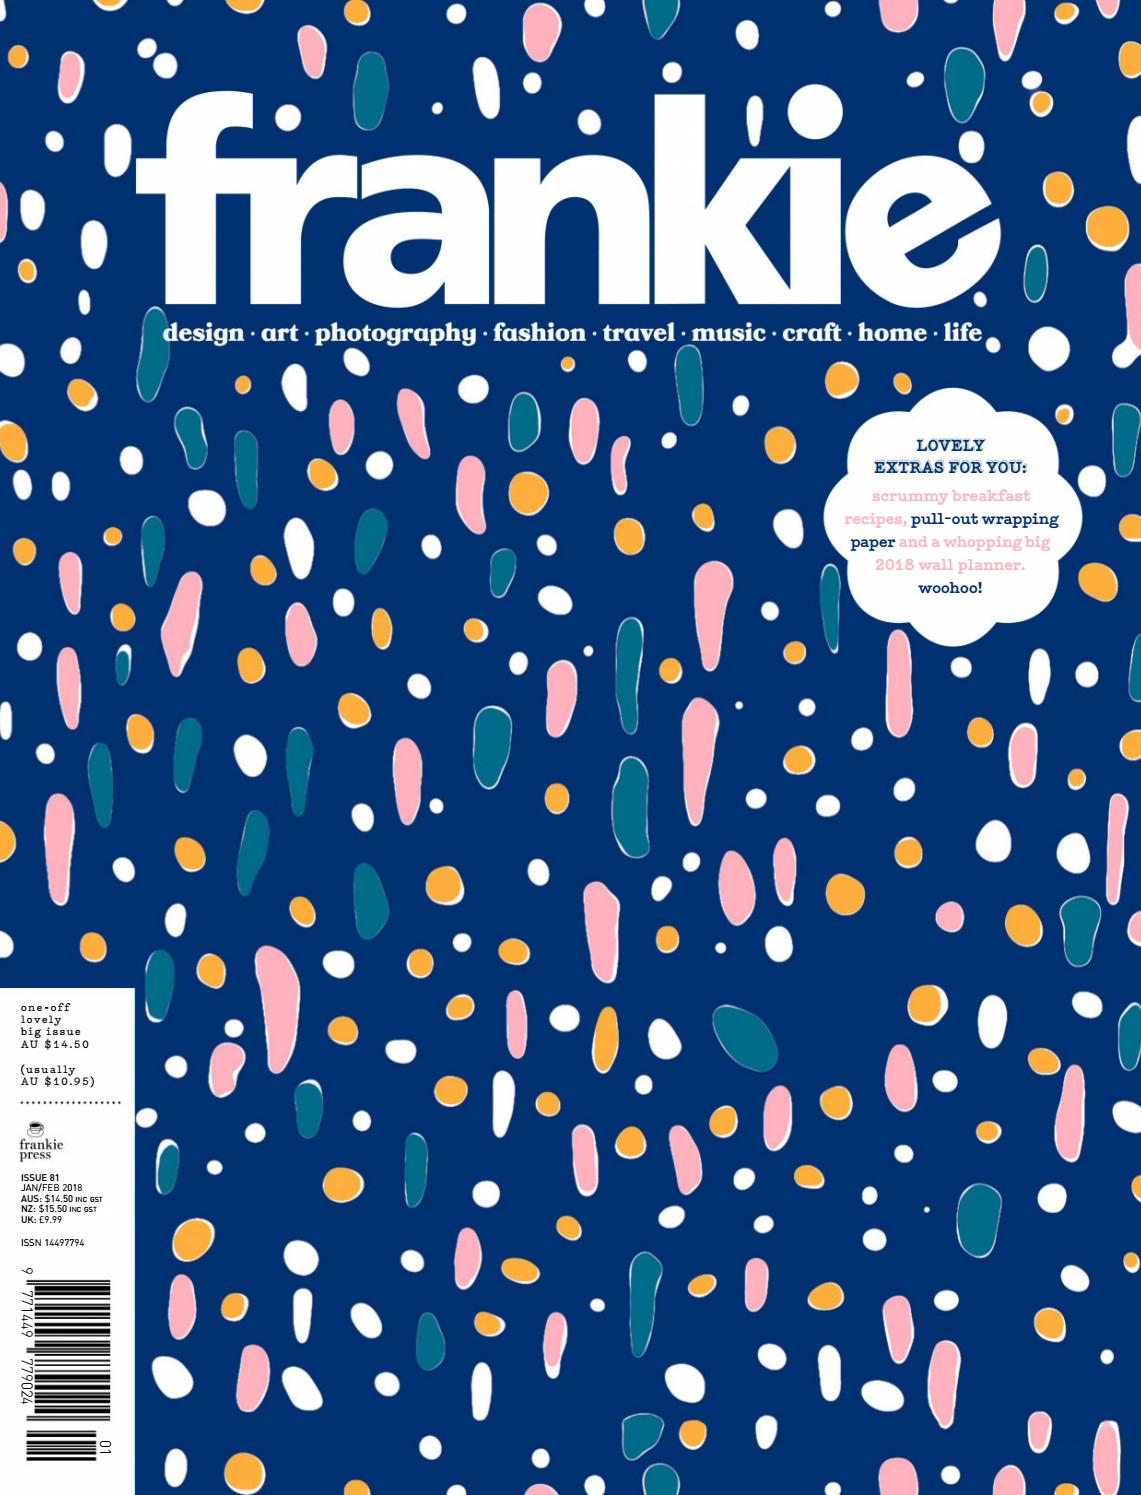 9bc254d842622c 2018 jan/feb frankie magazine by Frankie Tjoeng - issuu